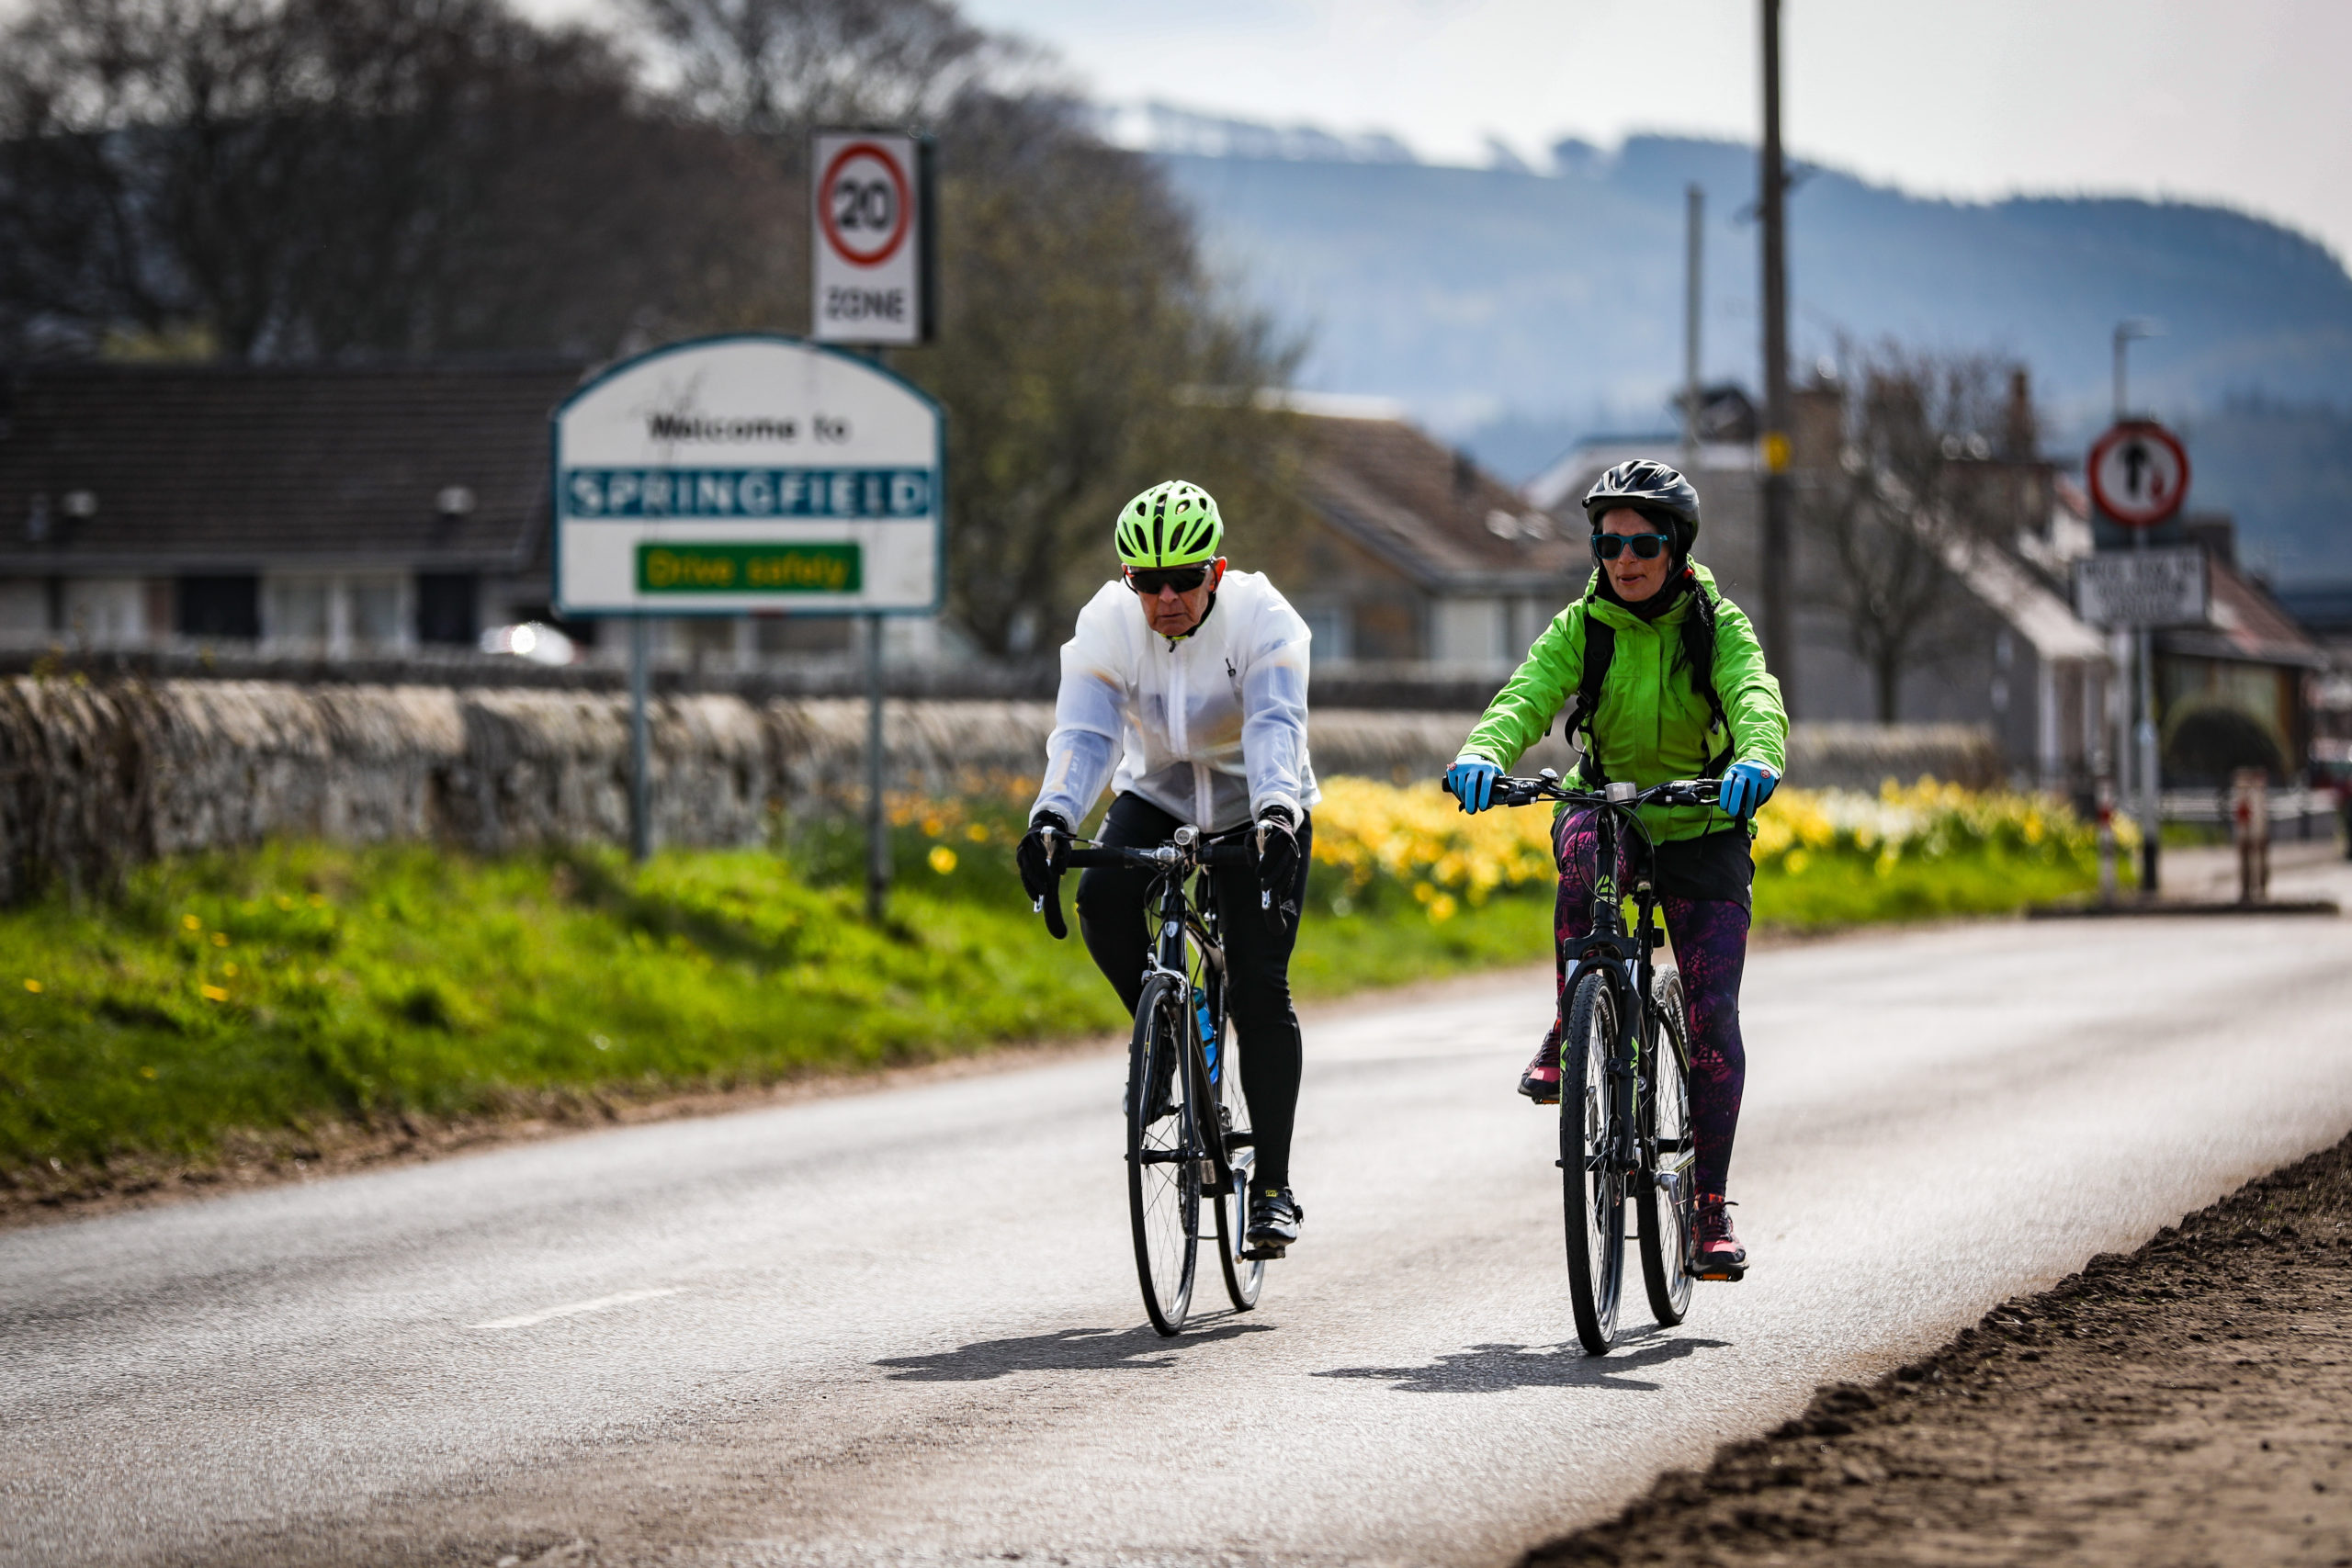 Courier Feats, Gayle Ritchie story, CR0008209 . 82 year old John McNally is the oldest entrance in the Etape cycle race and will be doing it for the 10th time this year. Gayle goes for a (18 mile) training cycle round Fife with John. Pic shows; John McNally and Gayle cycling in Fife. Monday, 15th April, 2019. Kris Miller/DC Thomson Media.